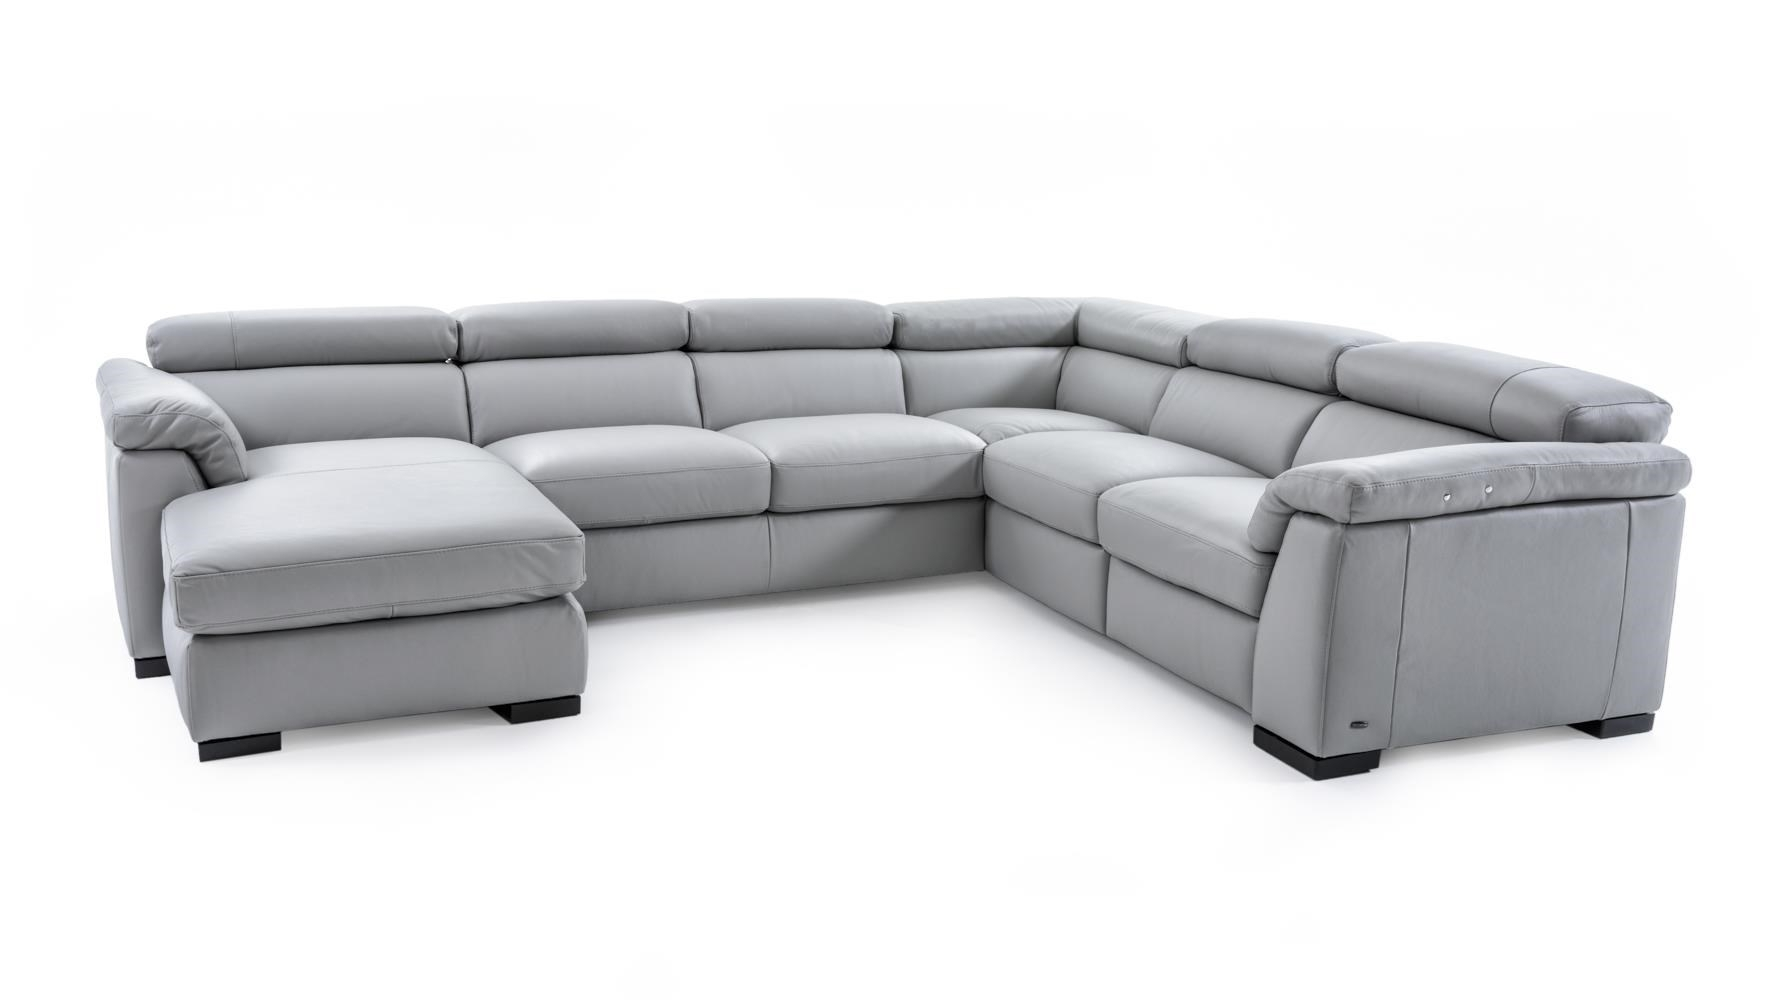 Natuzzi Editions B634 B634 Sect 1 Gray Contemporary Leather With Regard To Natuzzi Sectional Sofas (Image 2 of 10)